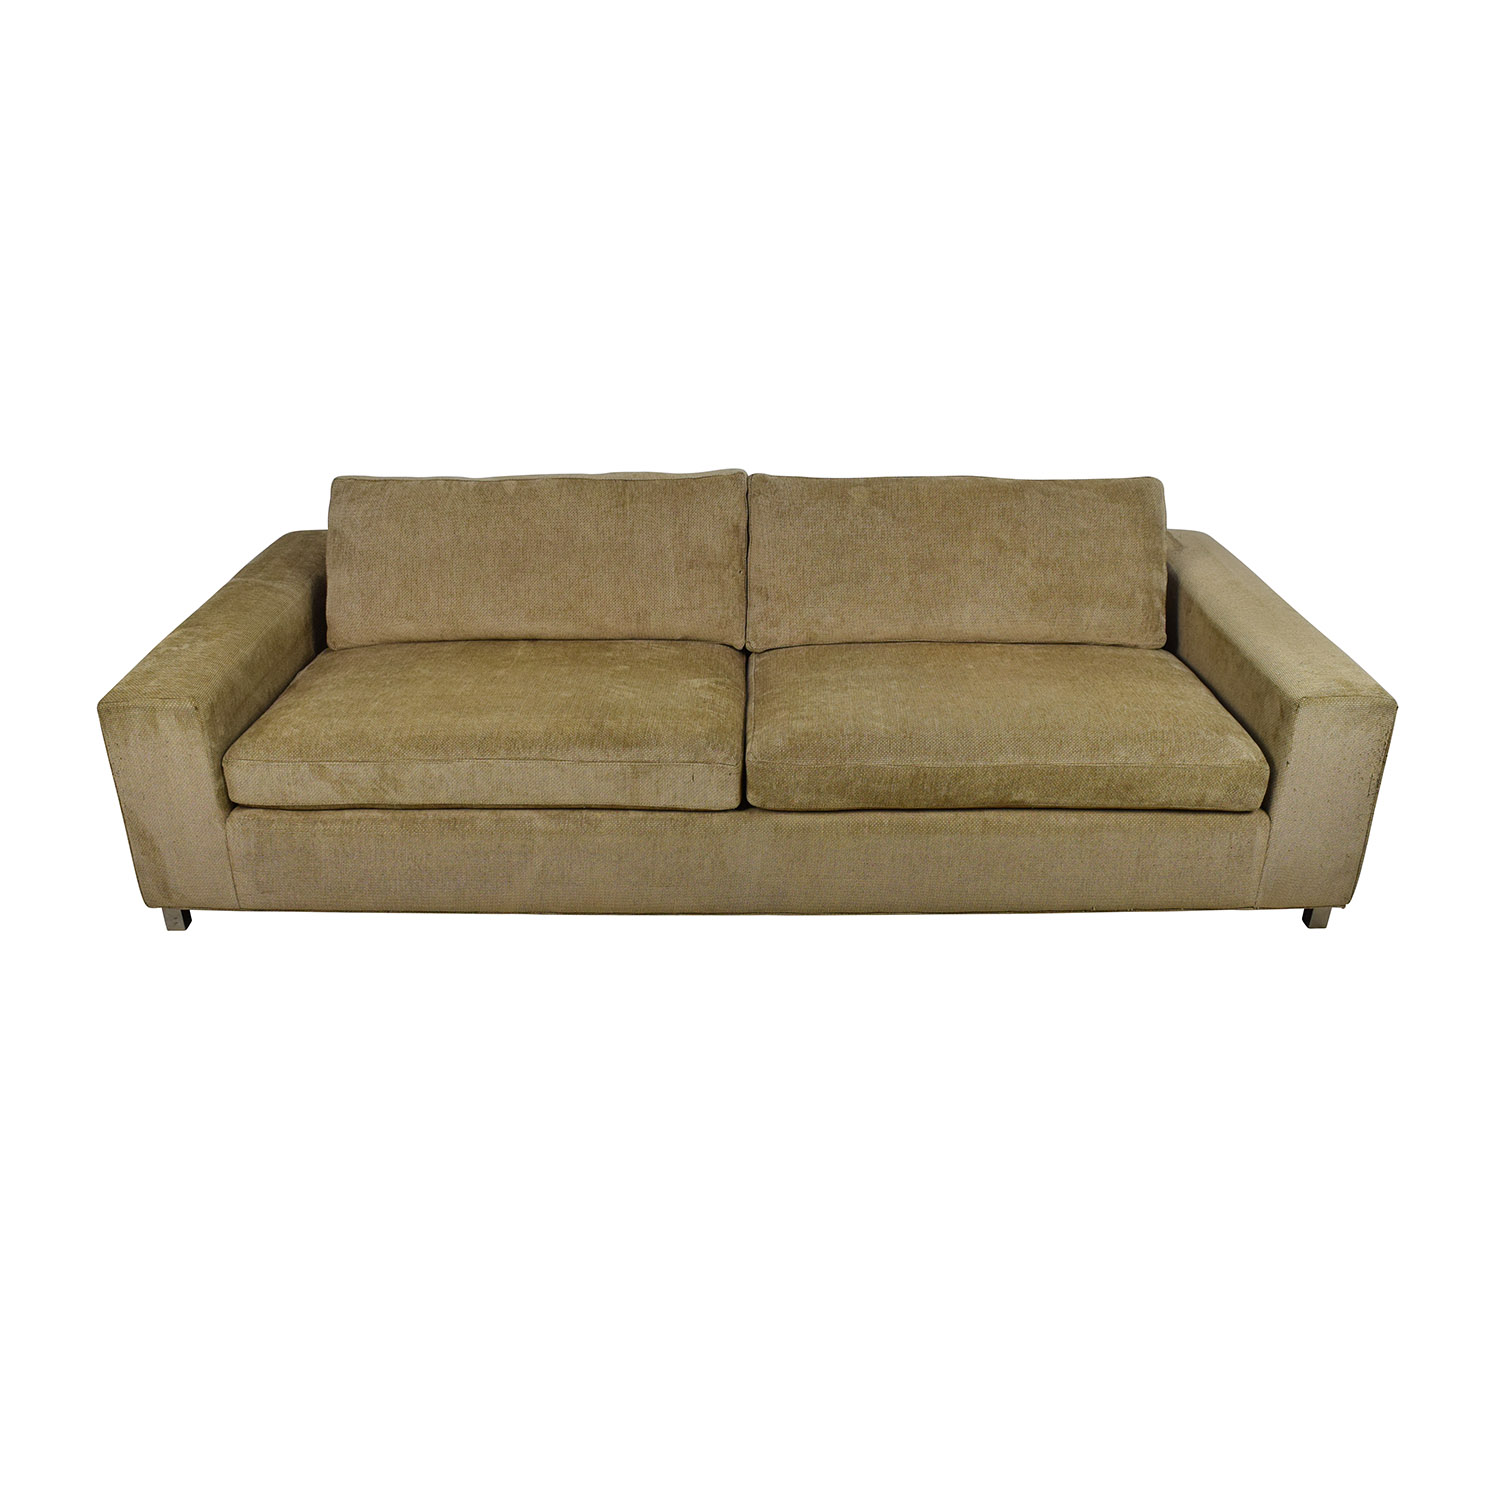 Room & Board Gold Tan Fabric Couch Room and Board